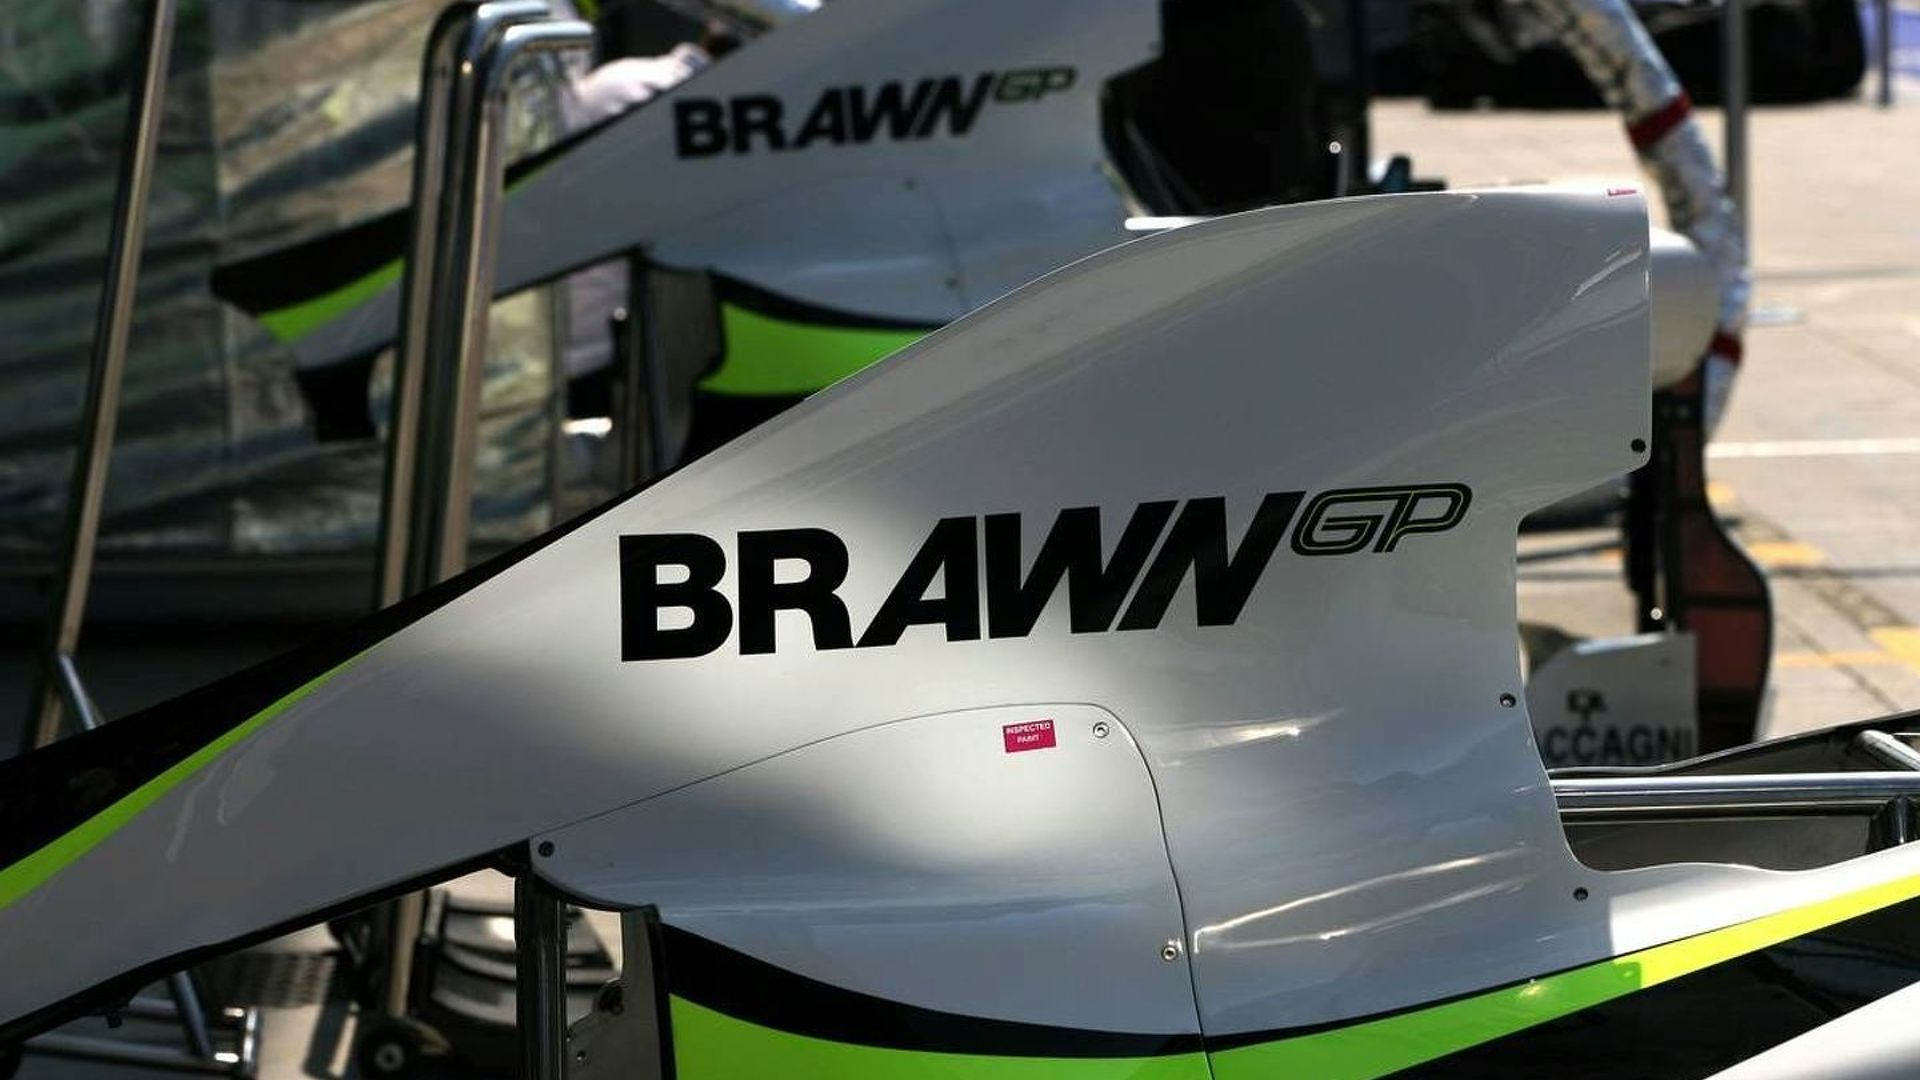 Brawn brand exposure tips scales at $255m